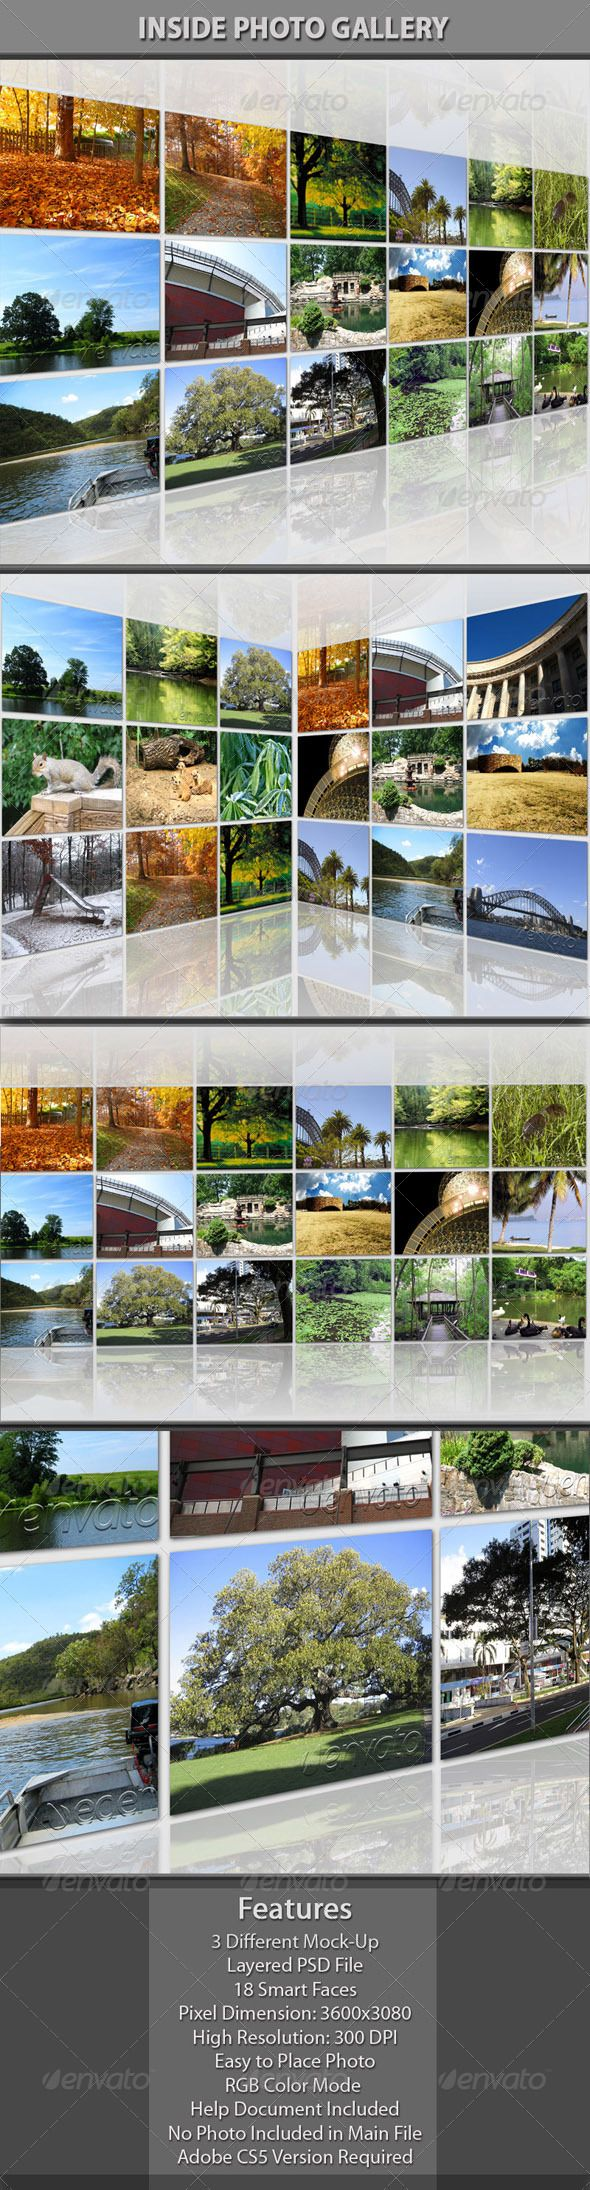 181 best psd photo templates images on pinterest font logo inside photo gallery 3d photopsd templateswall pronofoot35fo Choice Image